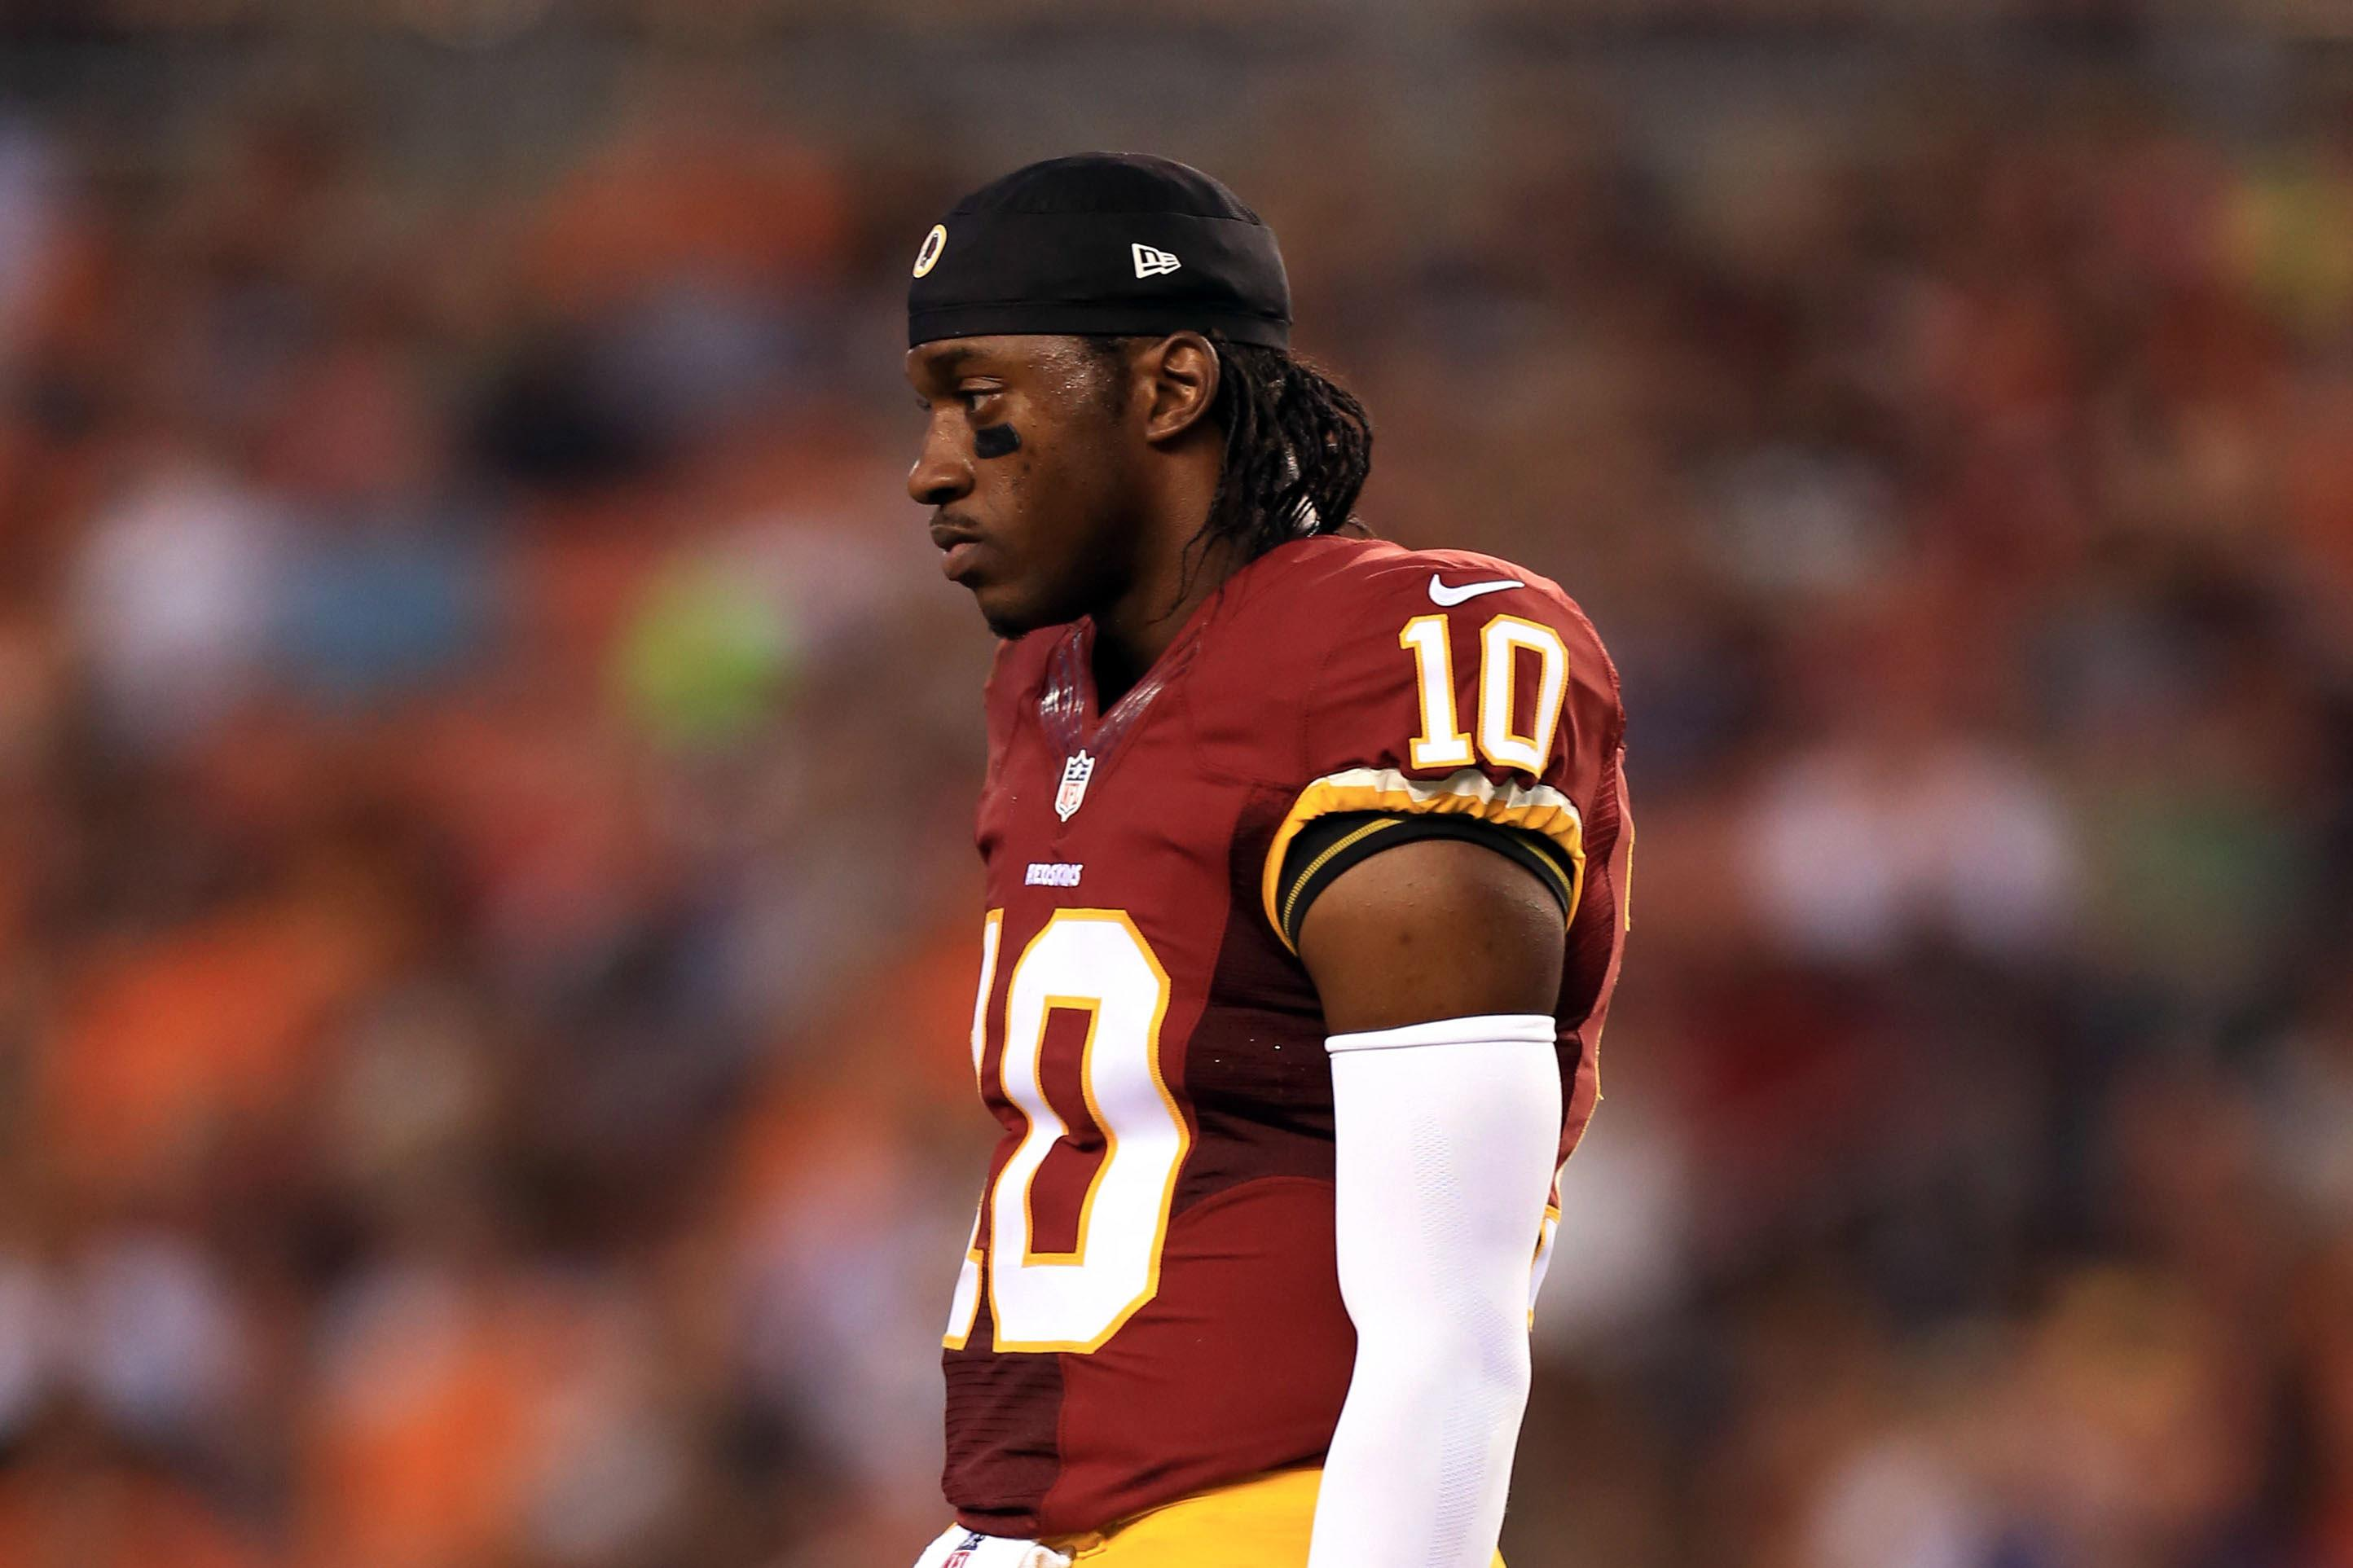 RG3 reacts to not being cleared to play against Ravens